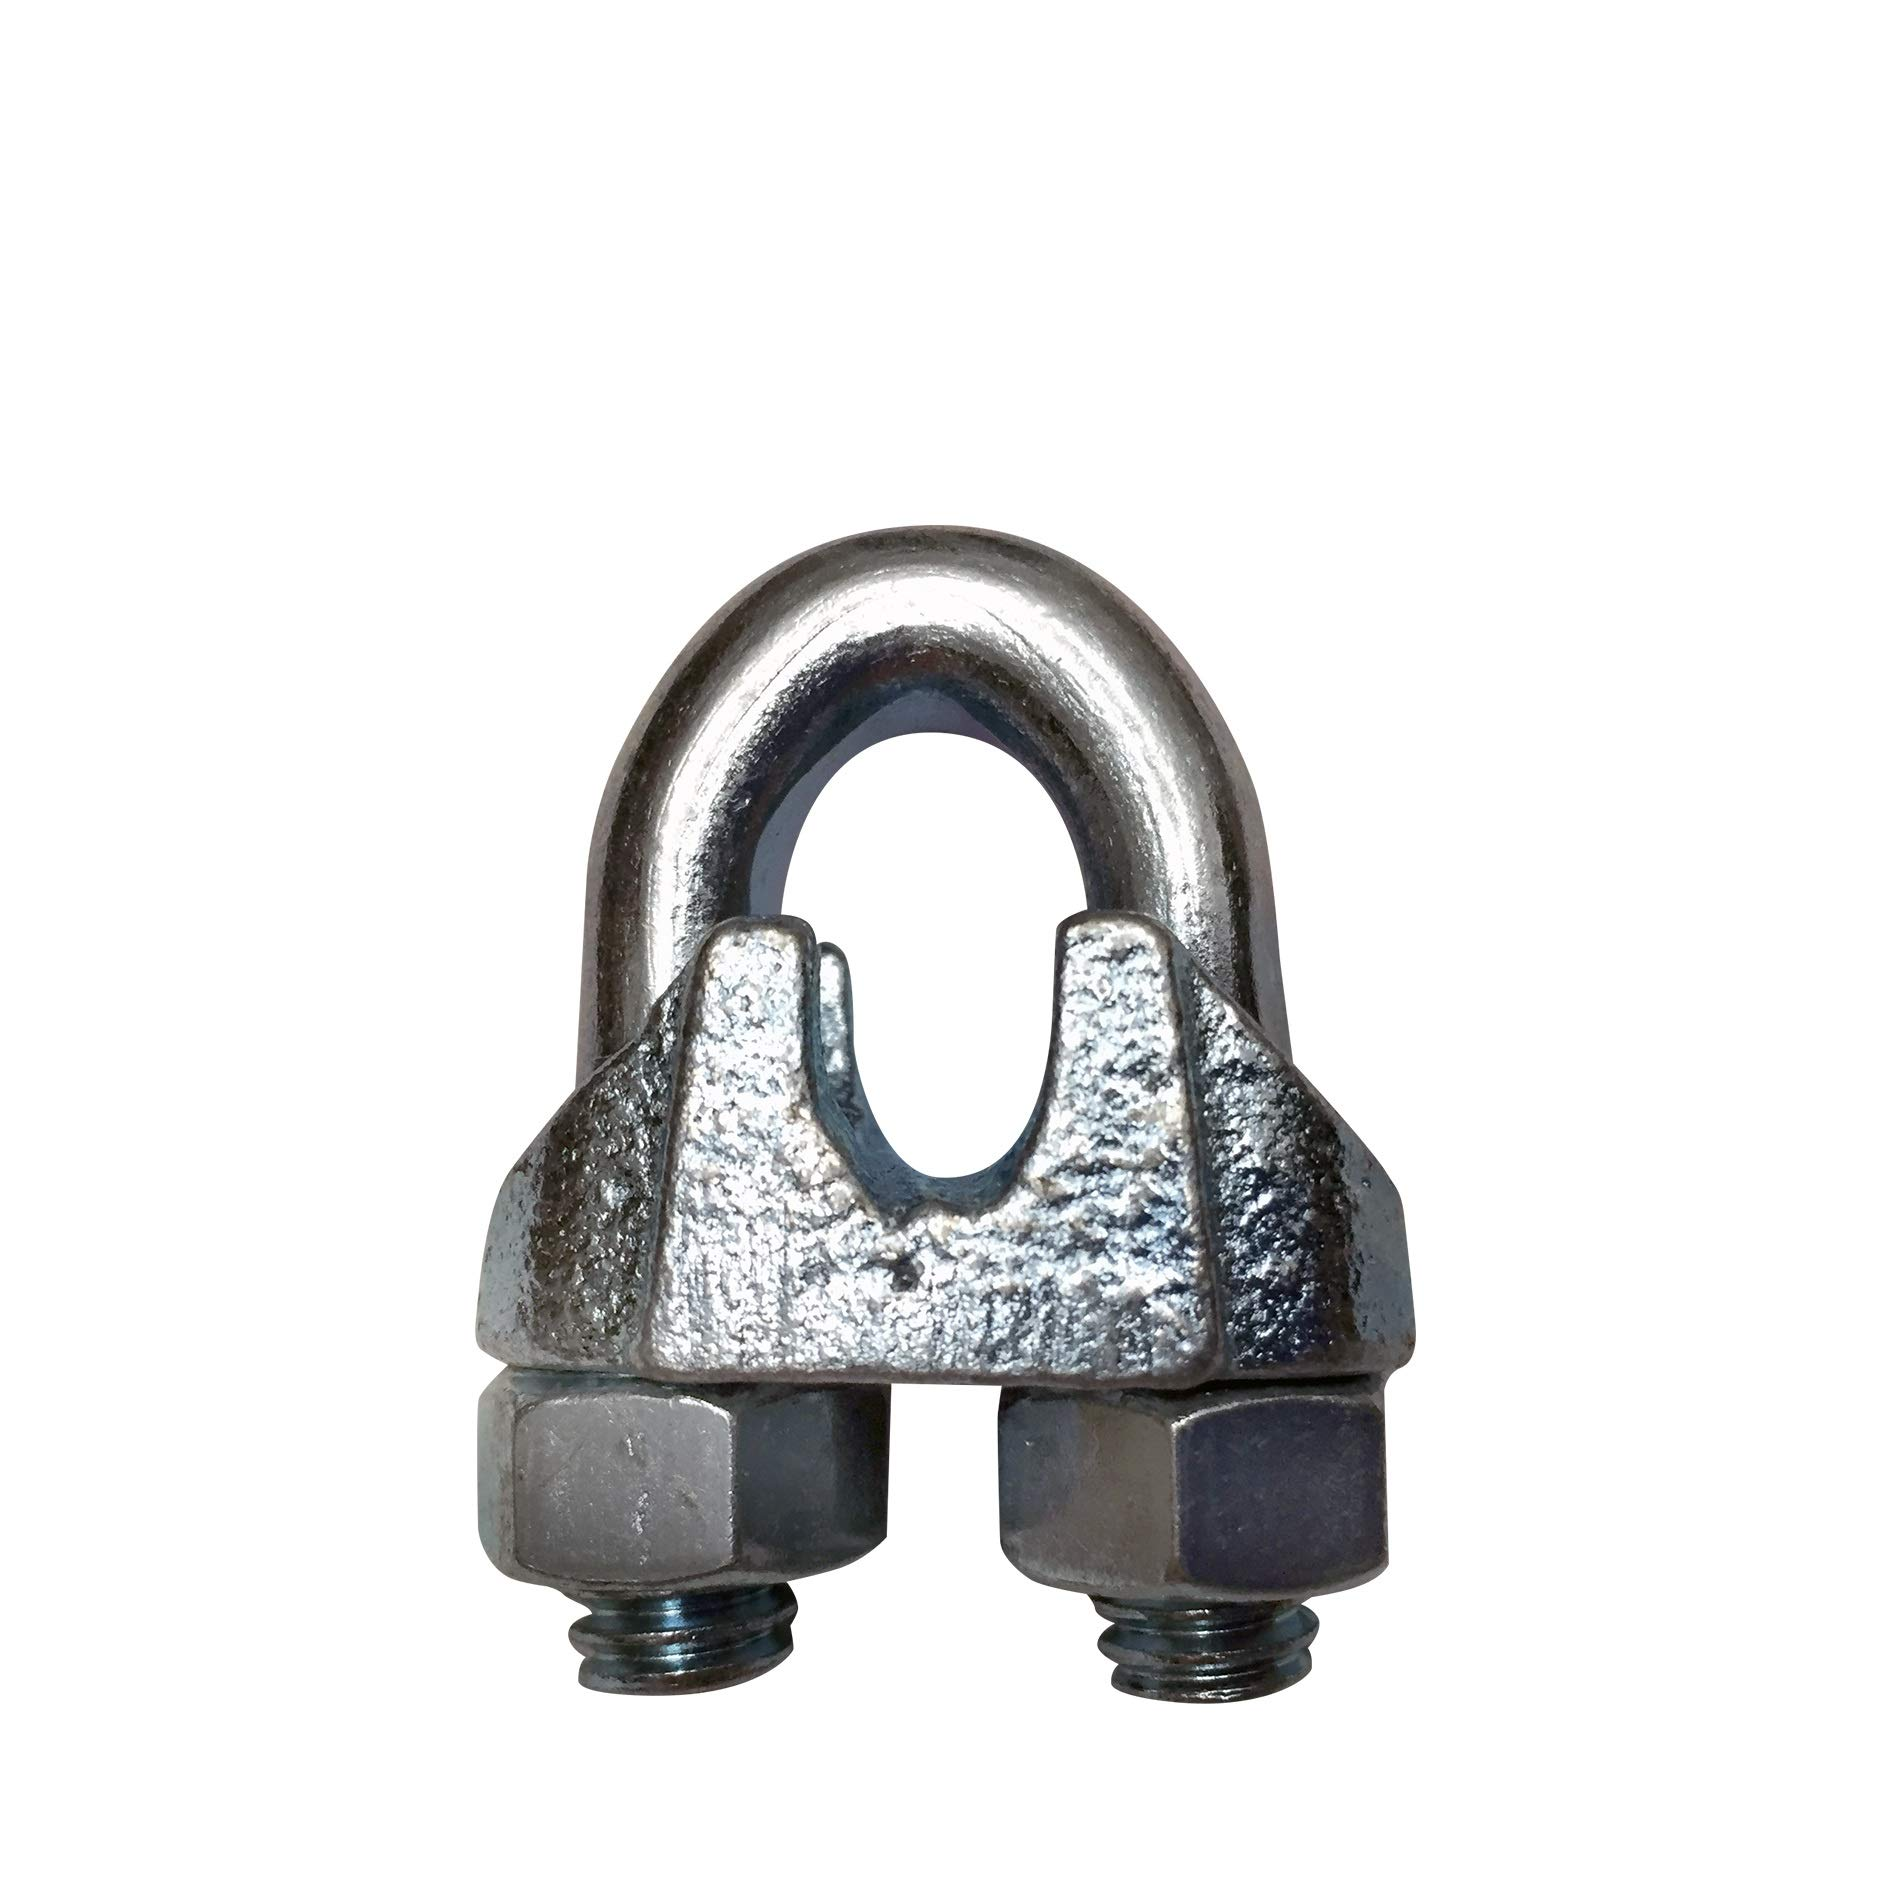 Wire Rope Clamp 1/4 inch 12 Pack Zinc Plated - Wire Rope Clip - Wire Cable Clamps - Yardware etcetera